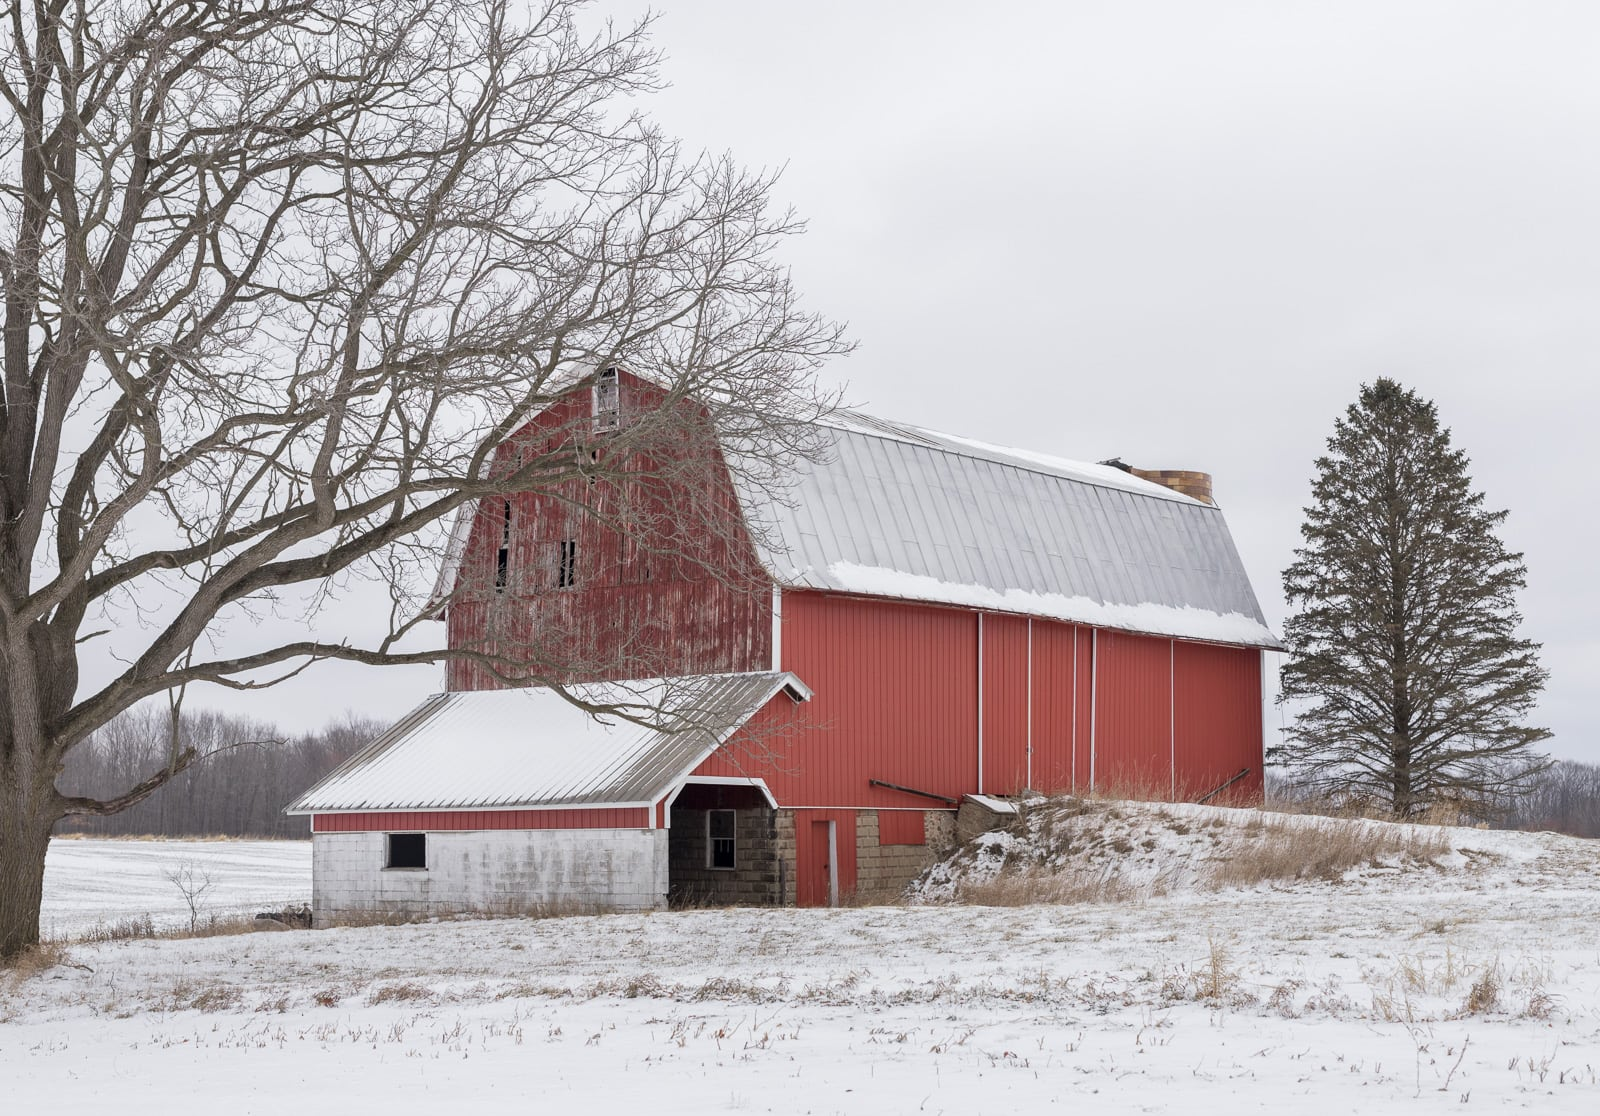 Old Red Dutch barn covered with snow